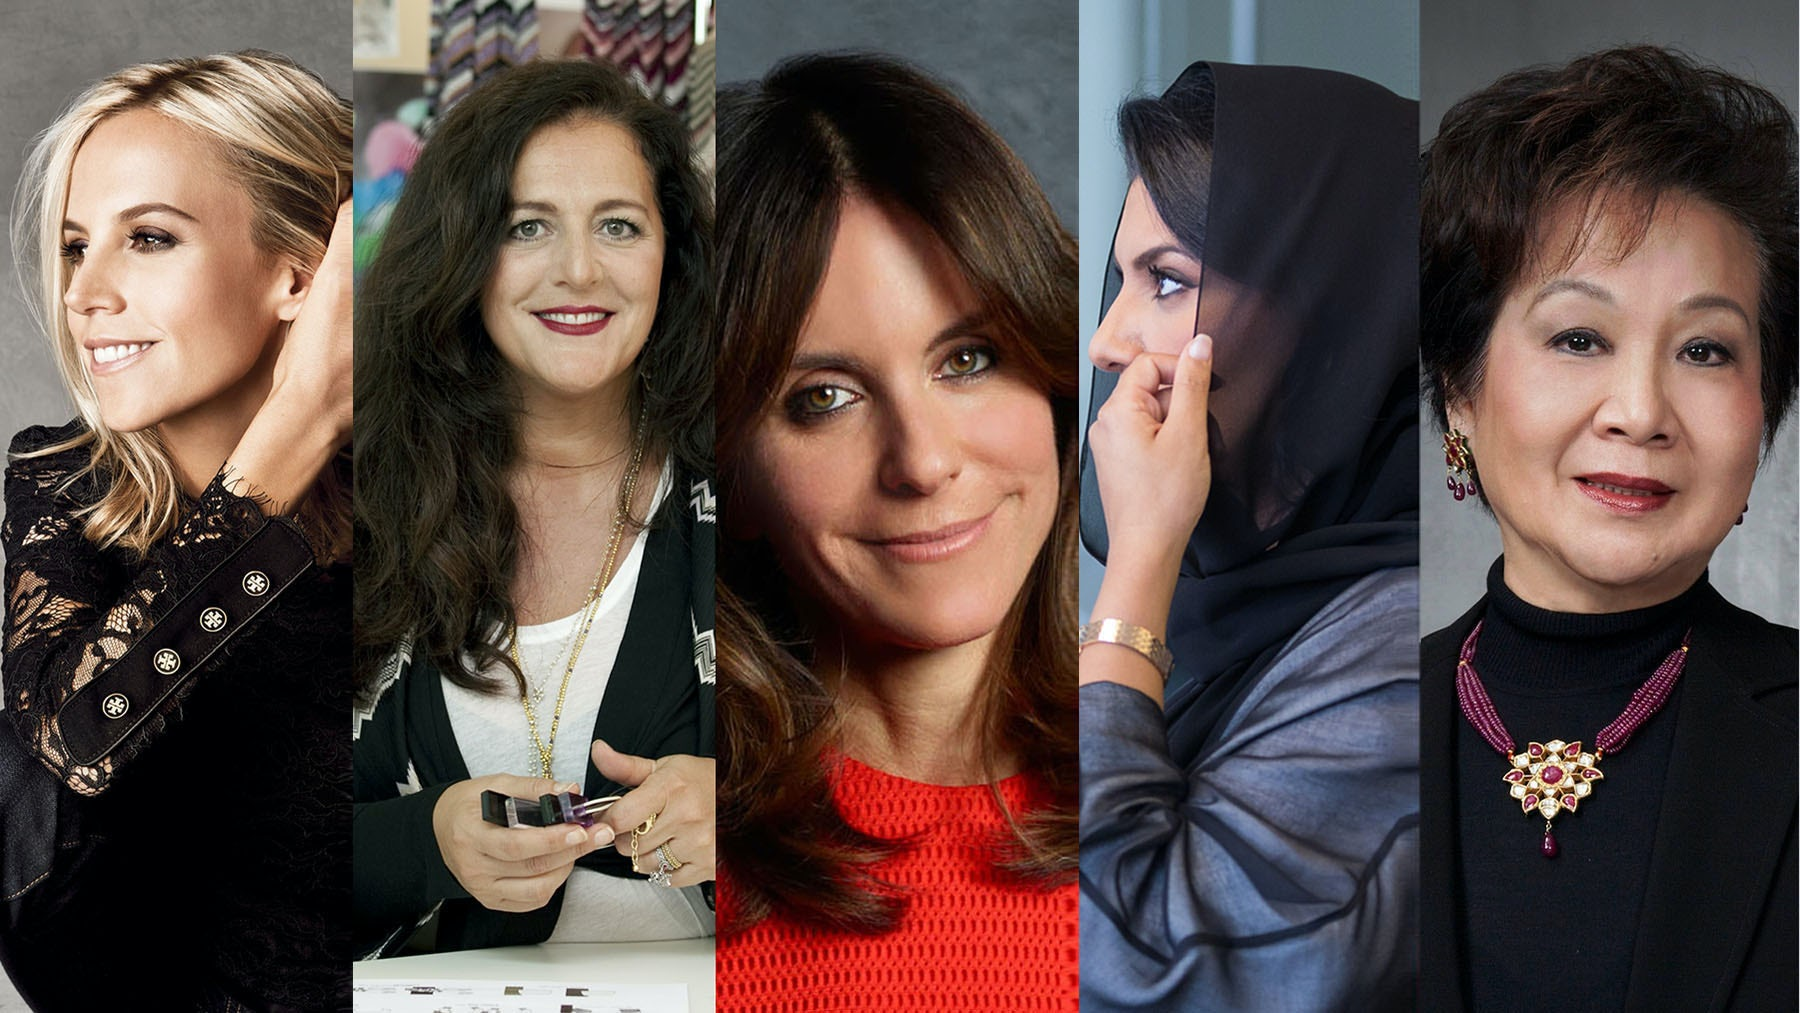 Left to right: Tory Burch, Angela Missoni, Alison Loehnis, Princess Reema Bandar Al-Saud, Balbina Wong | Source: Courtesy